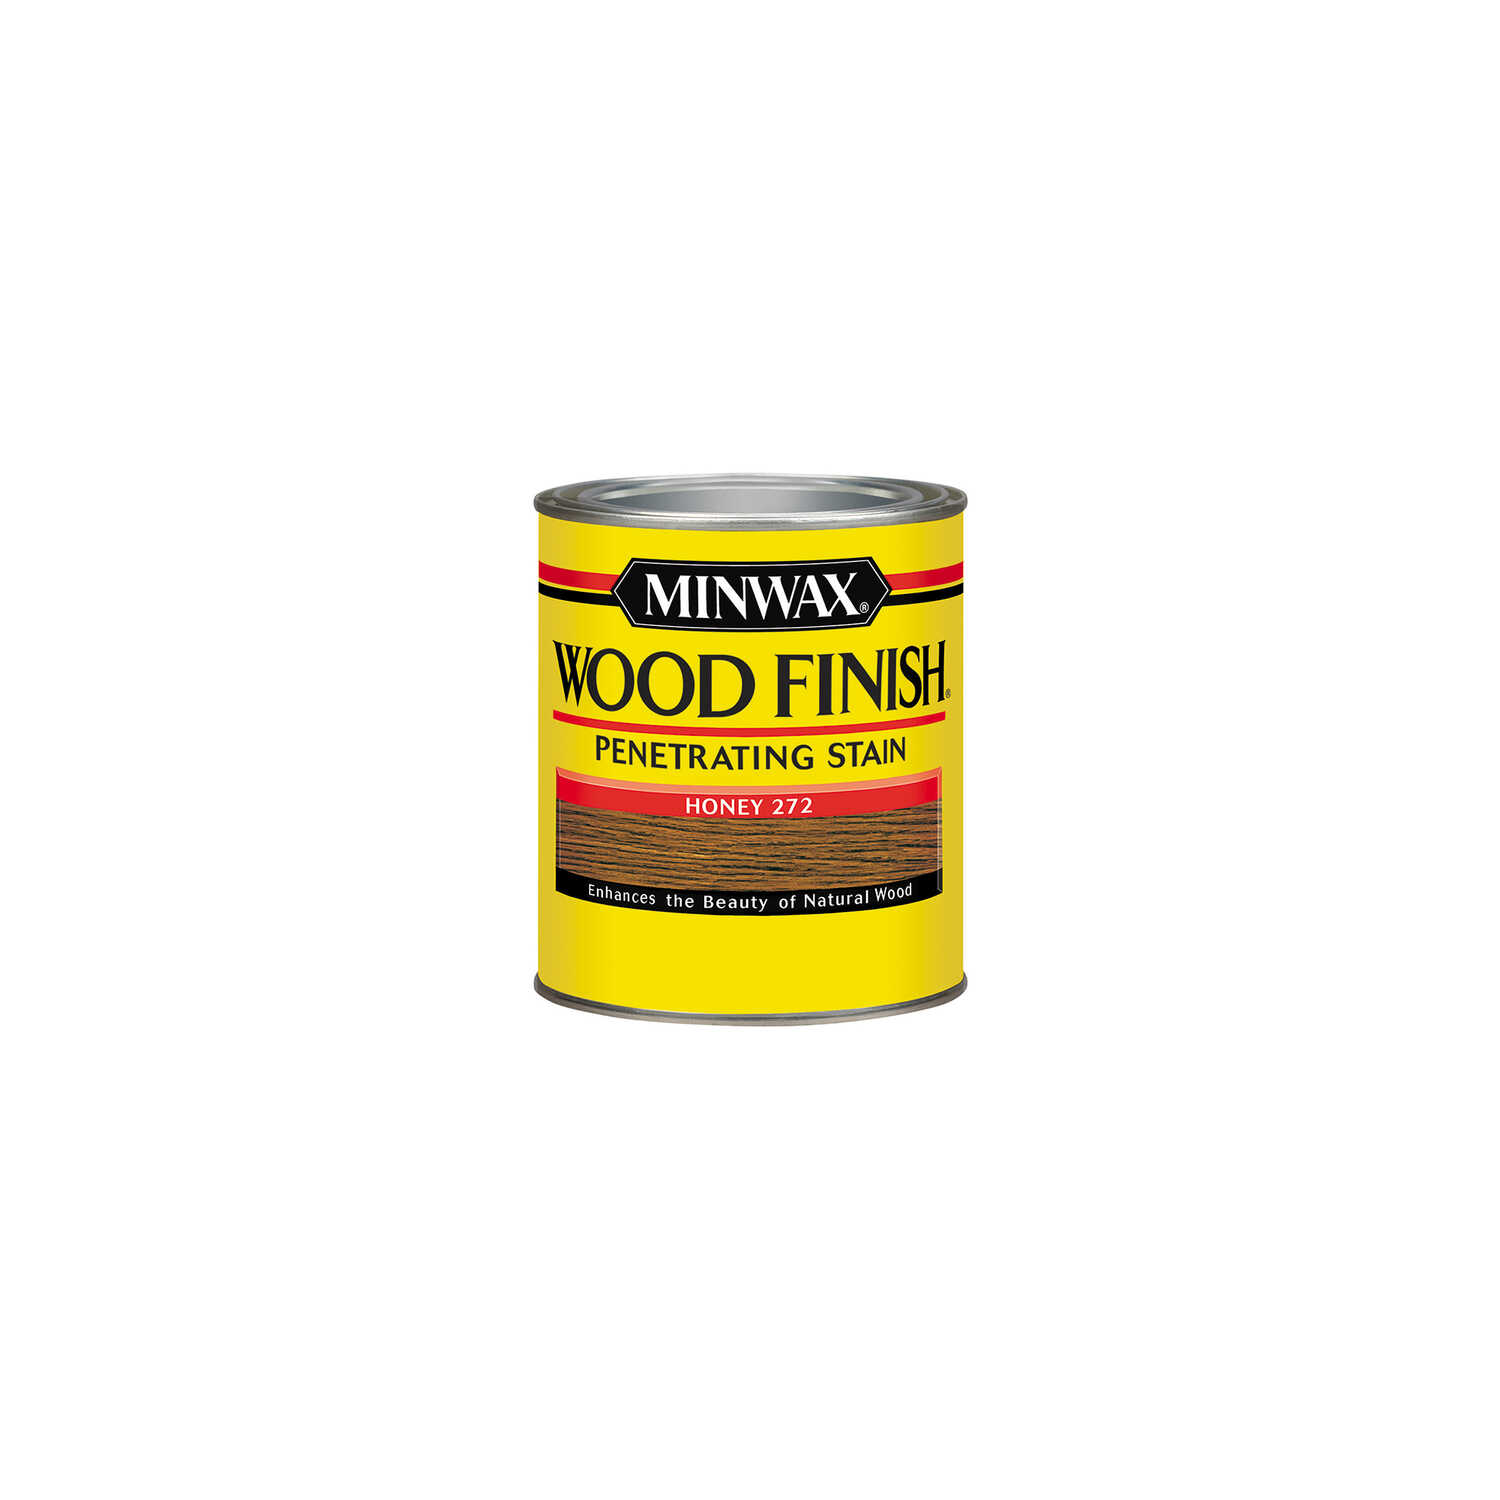 Minwax  Wood Finish  Semi-Transparent  Honey  Oil-Based  Oil  Wood Stain  0.5 pt.